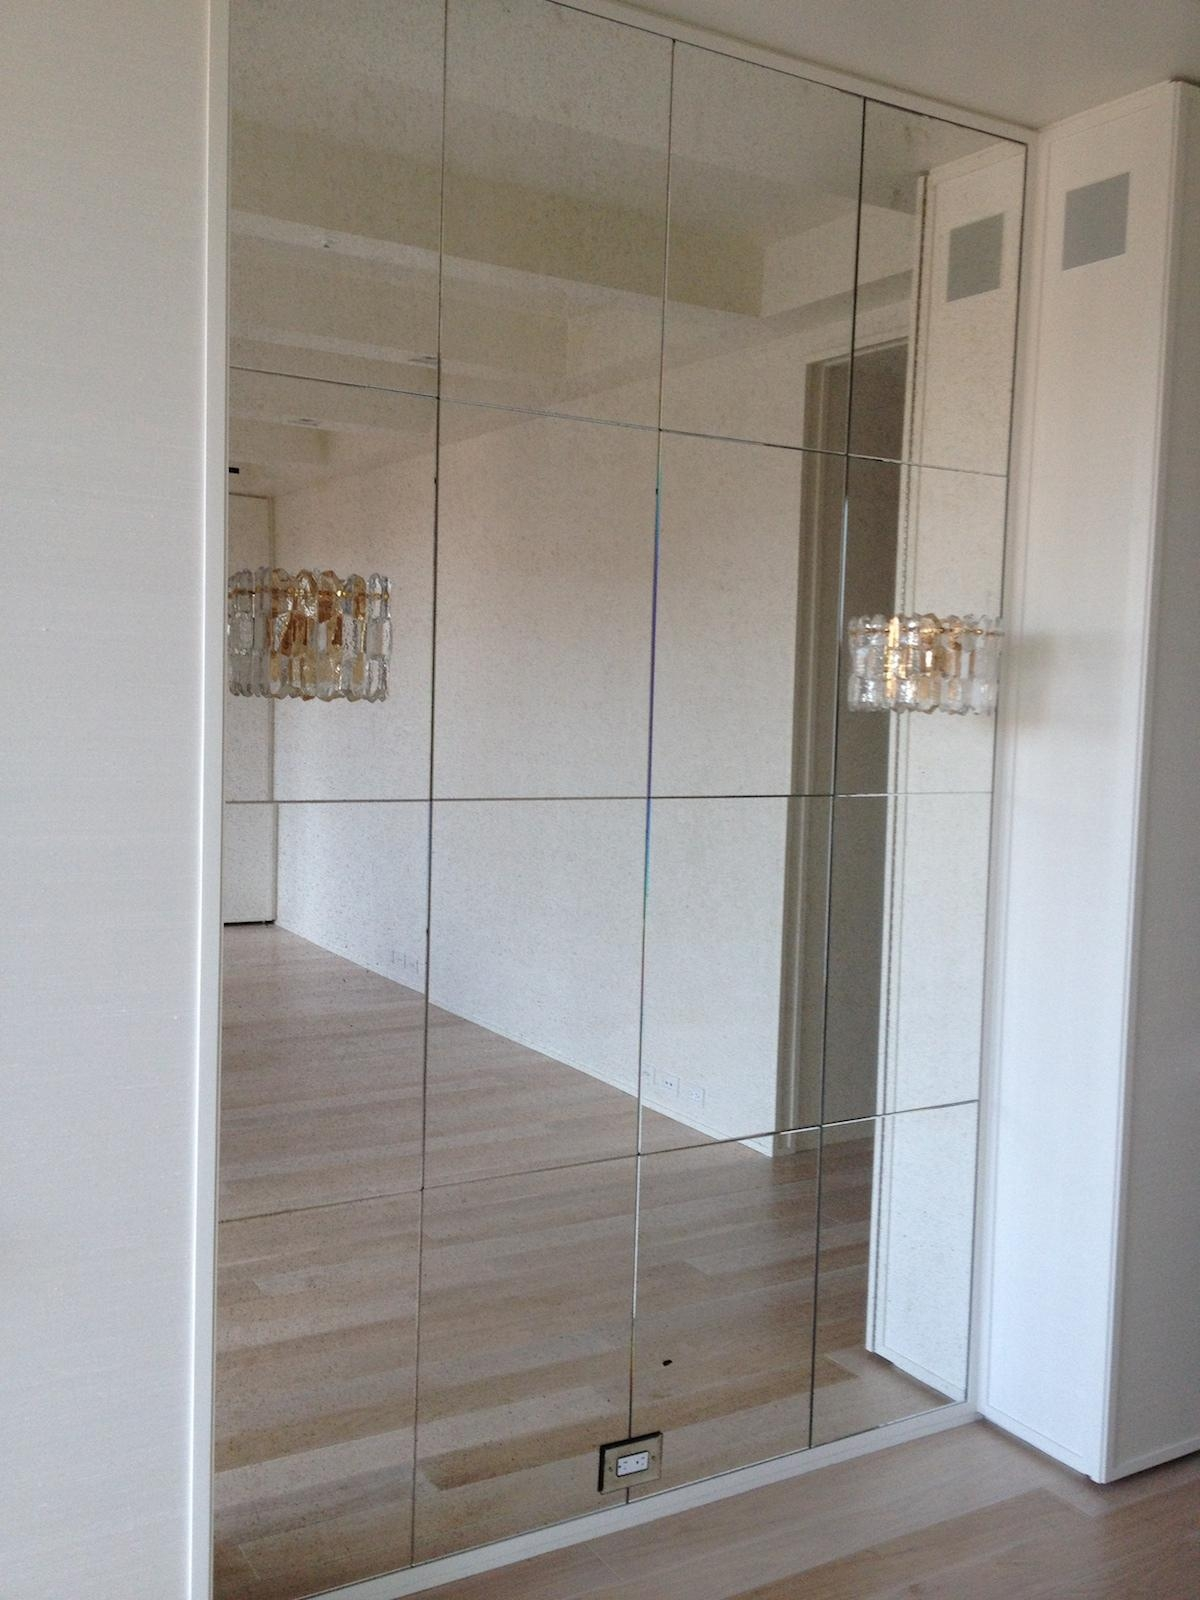 Install Wall Mirrors Without Damaging Your Apartment Walls Within Walls Mirrors (View 2 of 20)